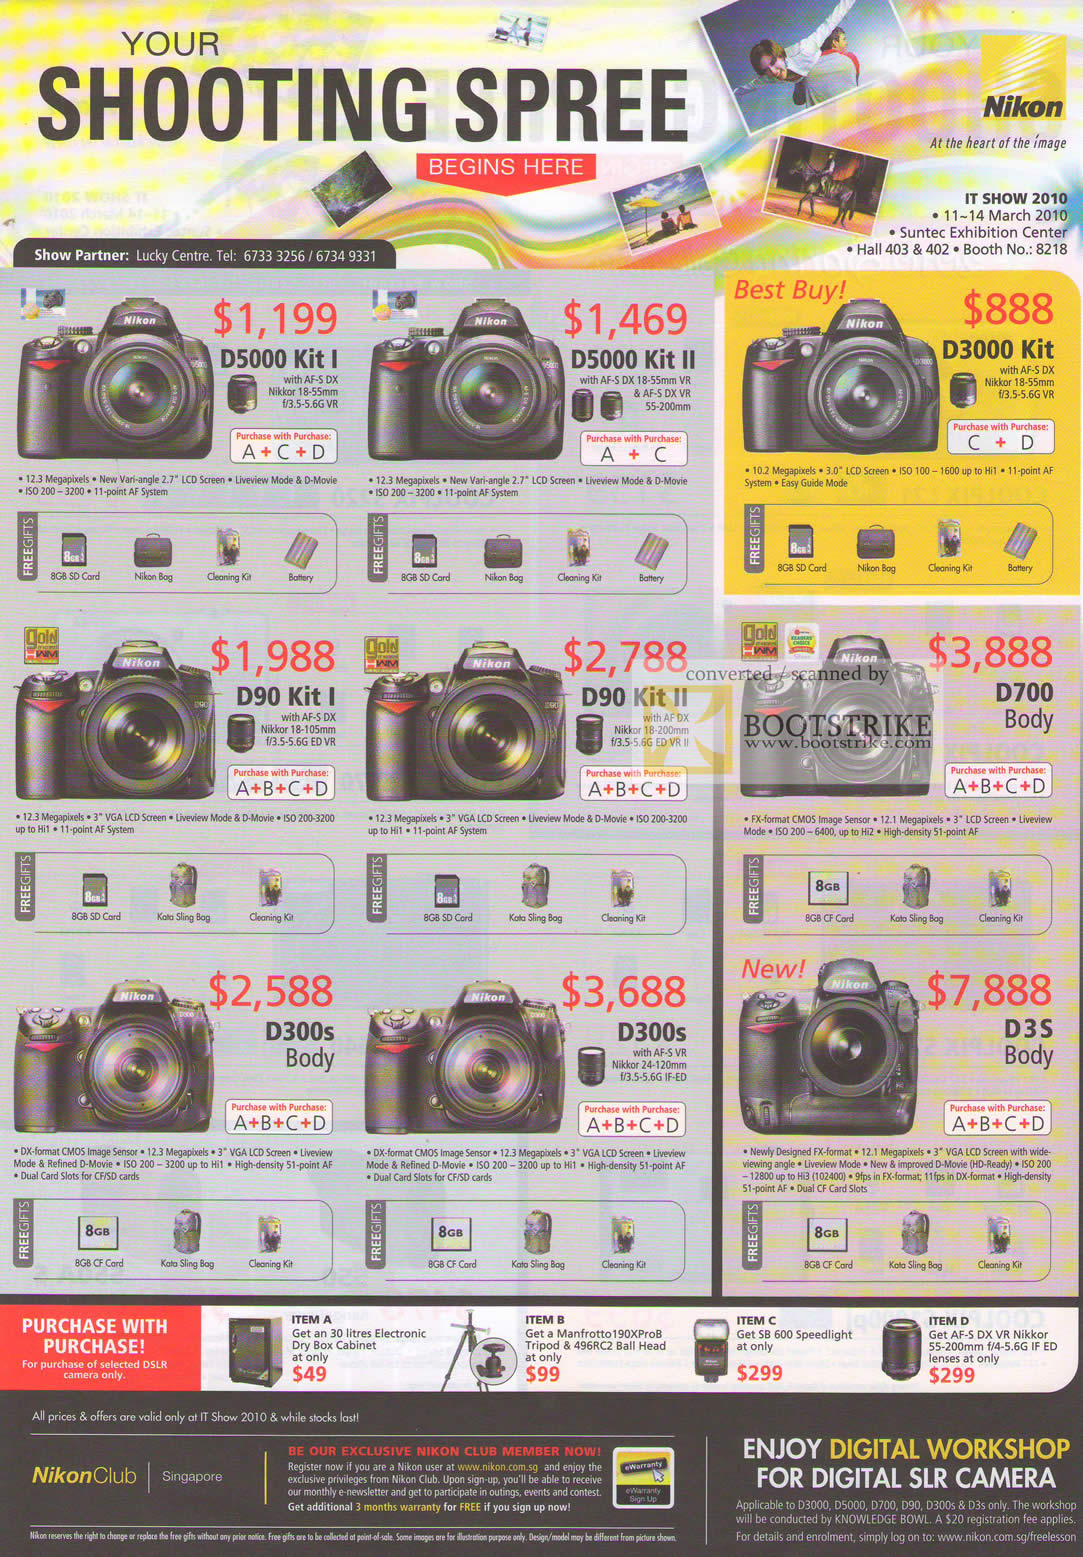 Camera List Of Dslr Cameras With Price nikon digital slr camera dslr d5000 d3000 d90 d700 d300s d3s it show 2010 price list image brochure of d90